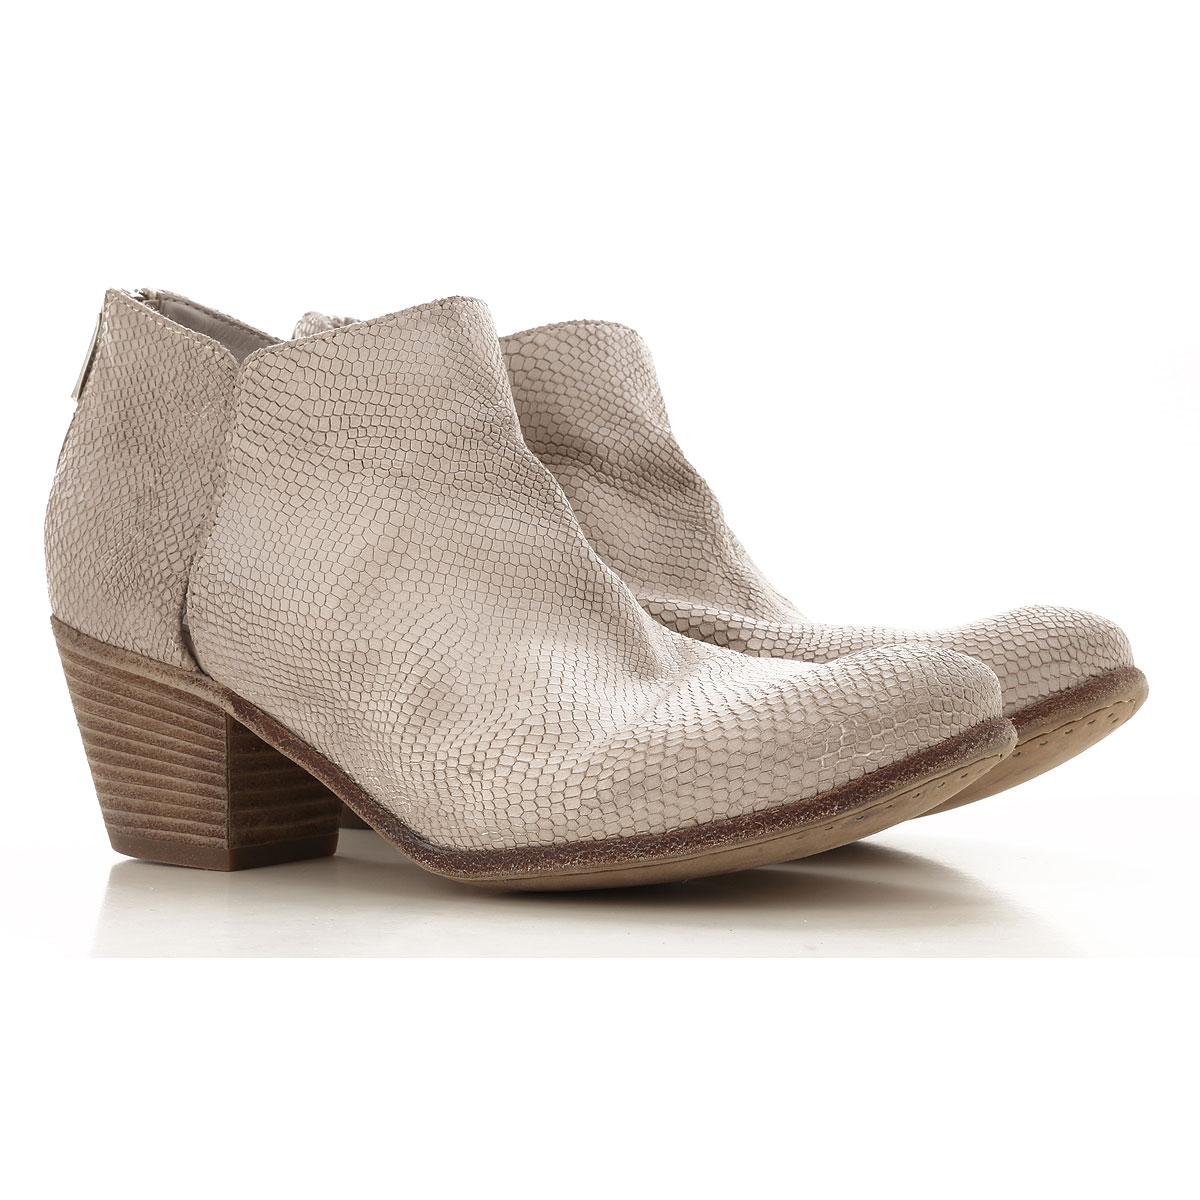 Image of Officine Creative Boots for Women, Booties On Sale, Beige Stone, Calfskin Leather, 2017, 6.5 7 8 8.5